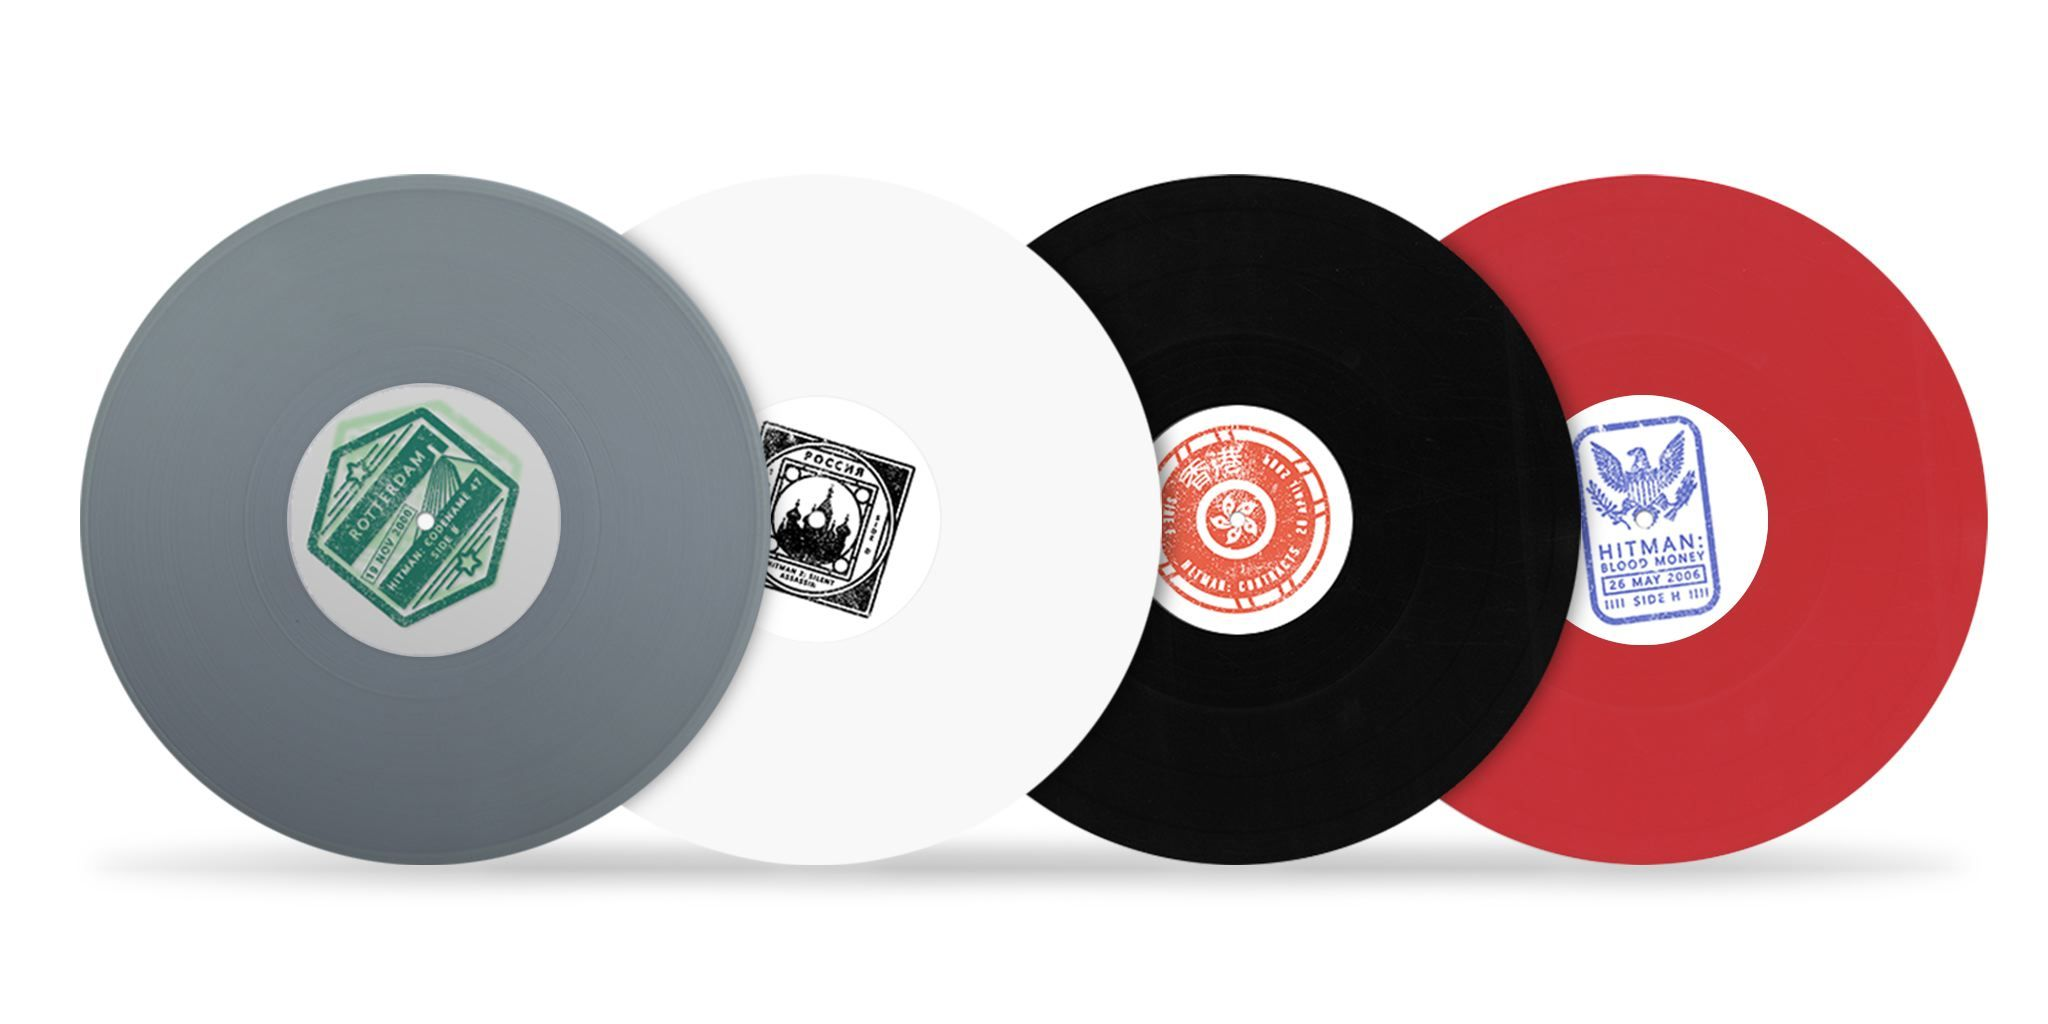 Each Hitman soundtrack receives a different colored LP.